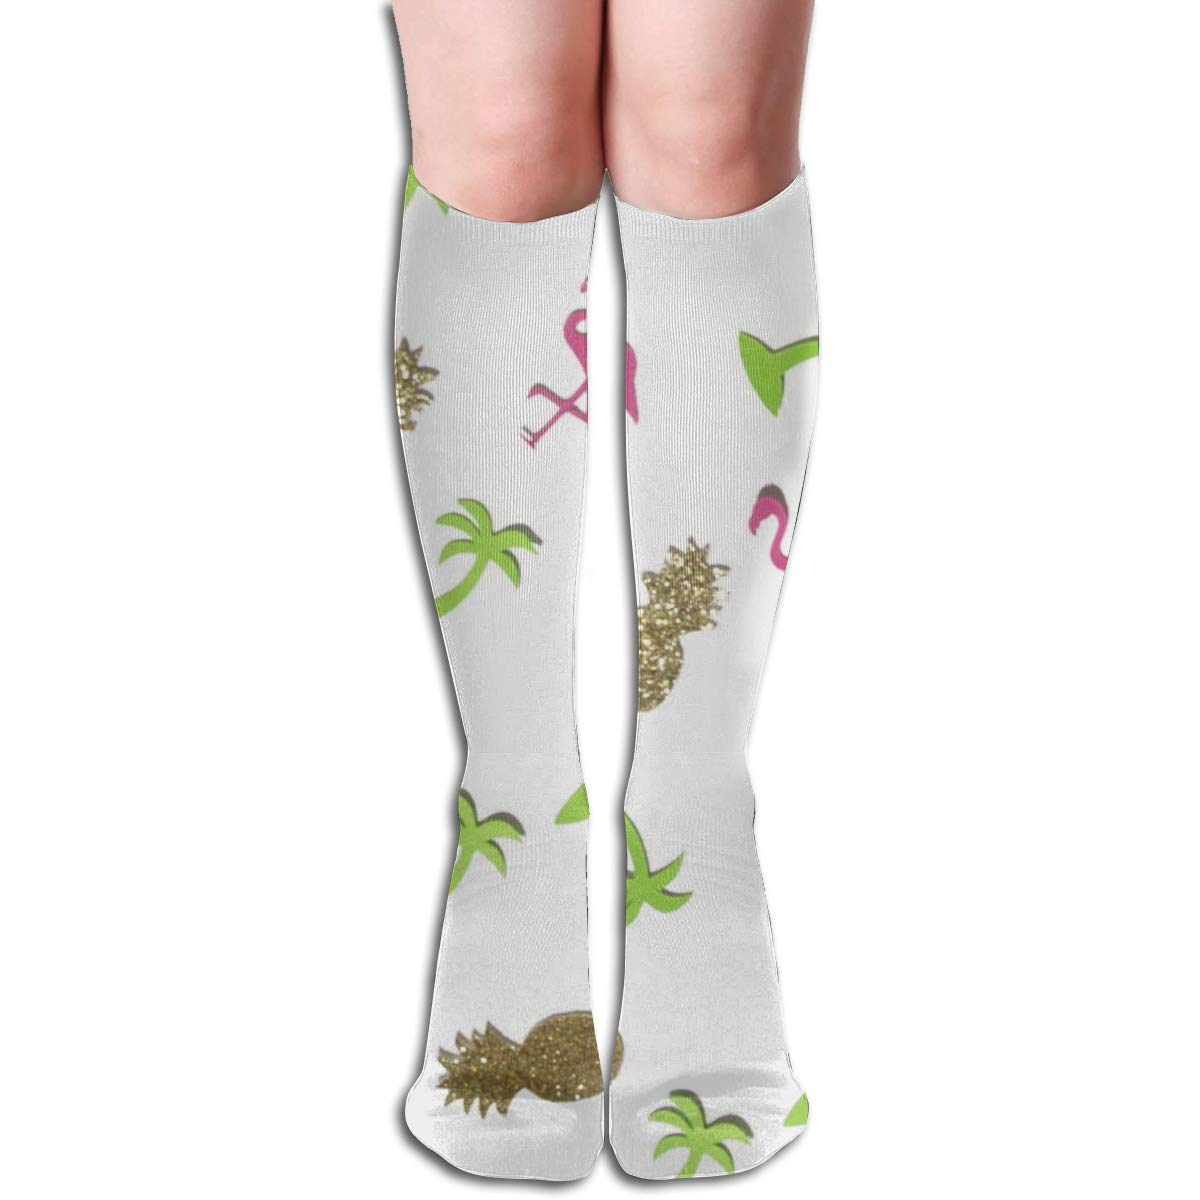 Stretch Stocking Tropical Confetti Soccer Socks Over The Calf Designer For Running,Athletic,Travel